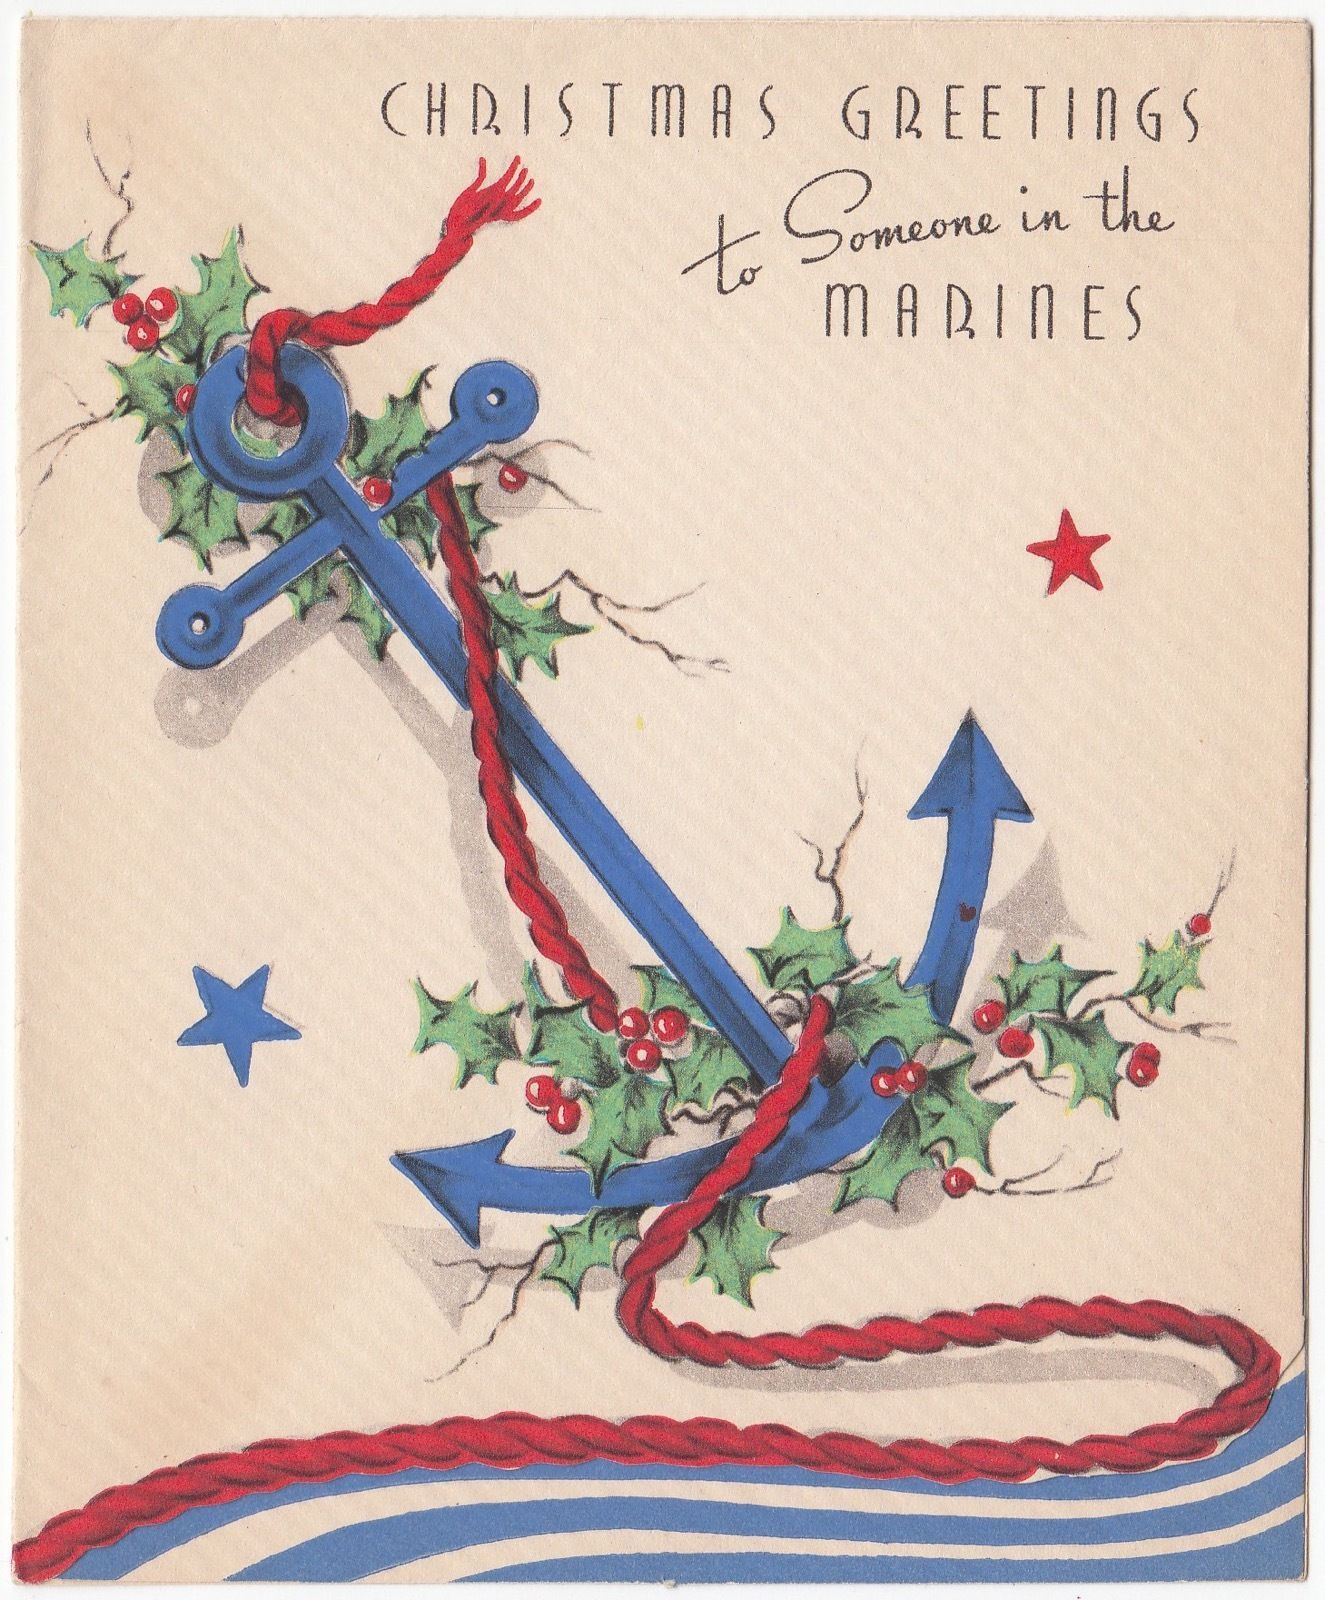 Vintage greeting card christmas to someone in the marines anchor vintage greeting card christmas to someone in the marines anchor military 1940s ebay kristyandbryce Choice Image